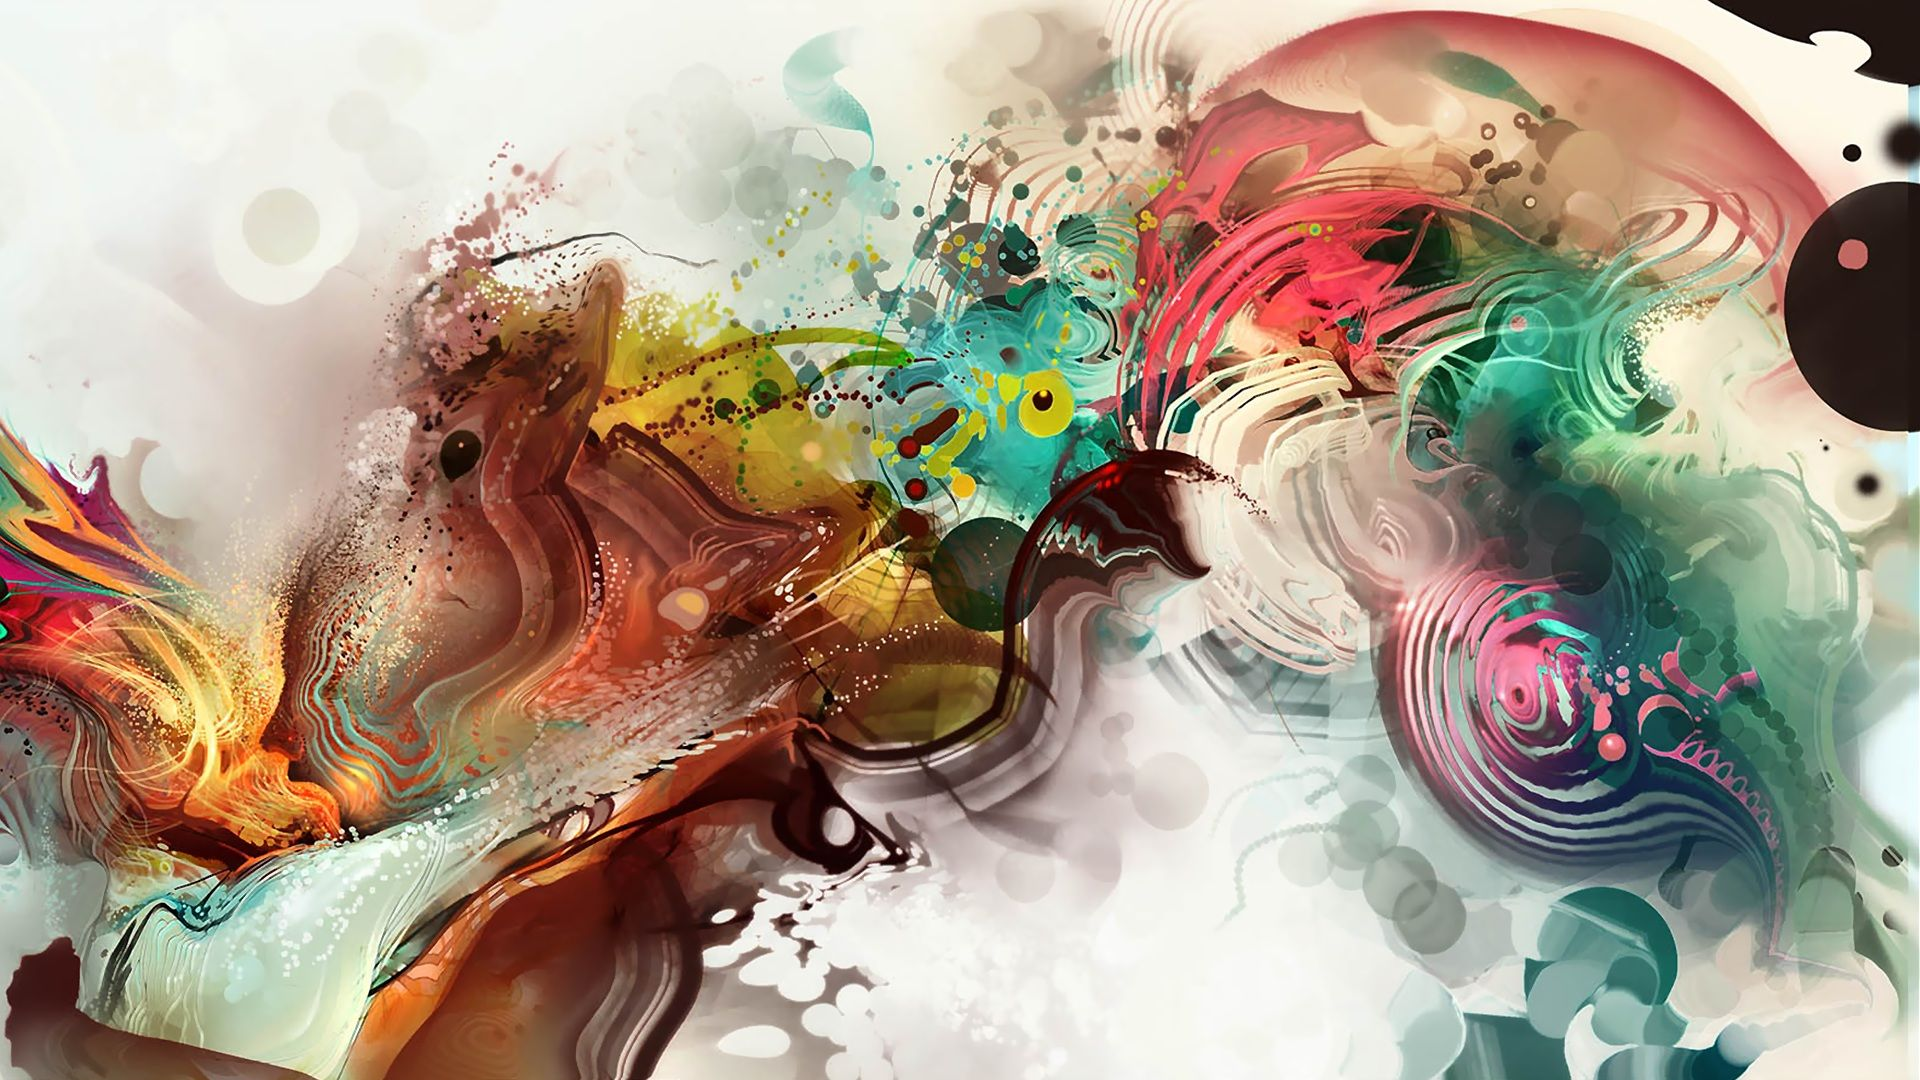 Artistic Abstract Wallpaper Full HD #m0d 1920x1080 Px 592